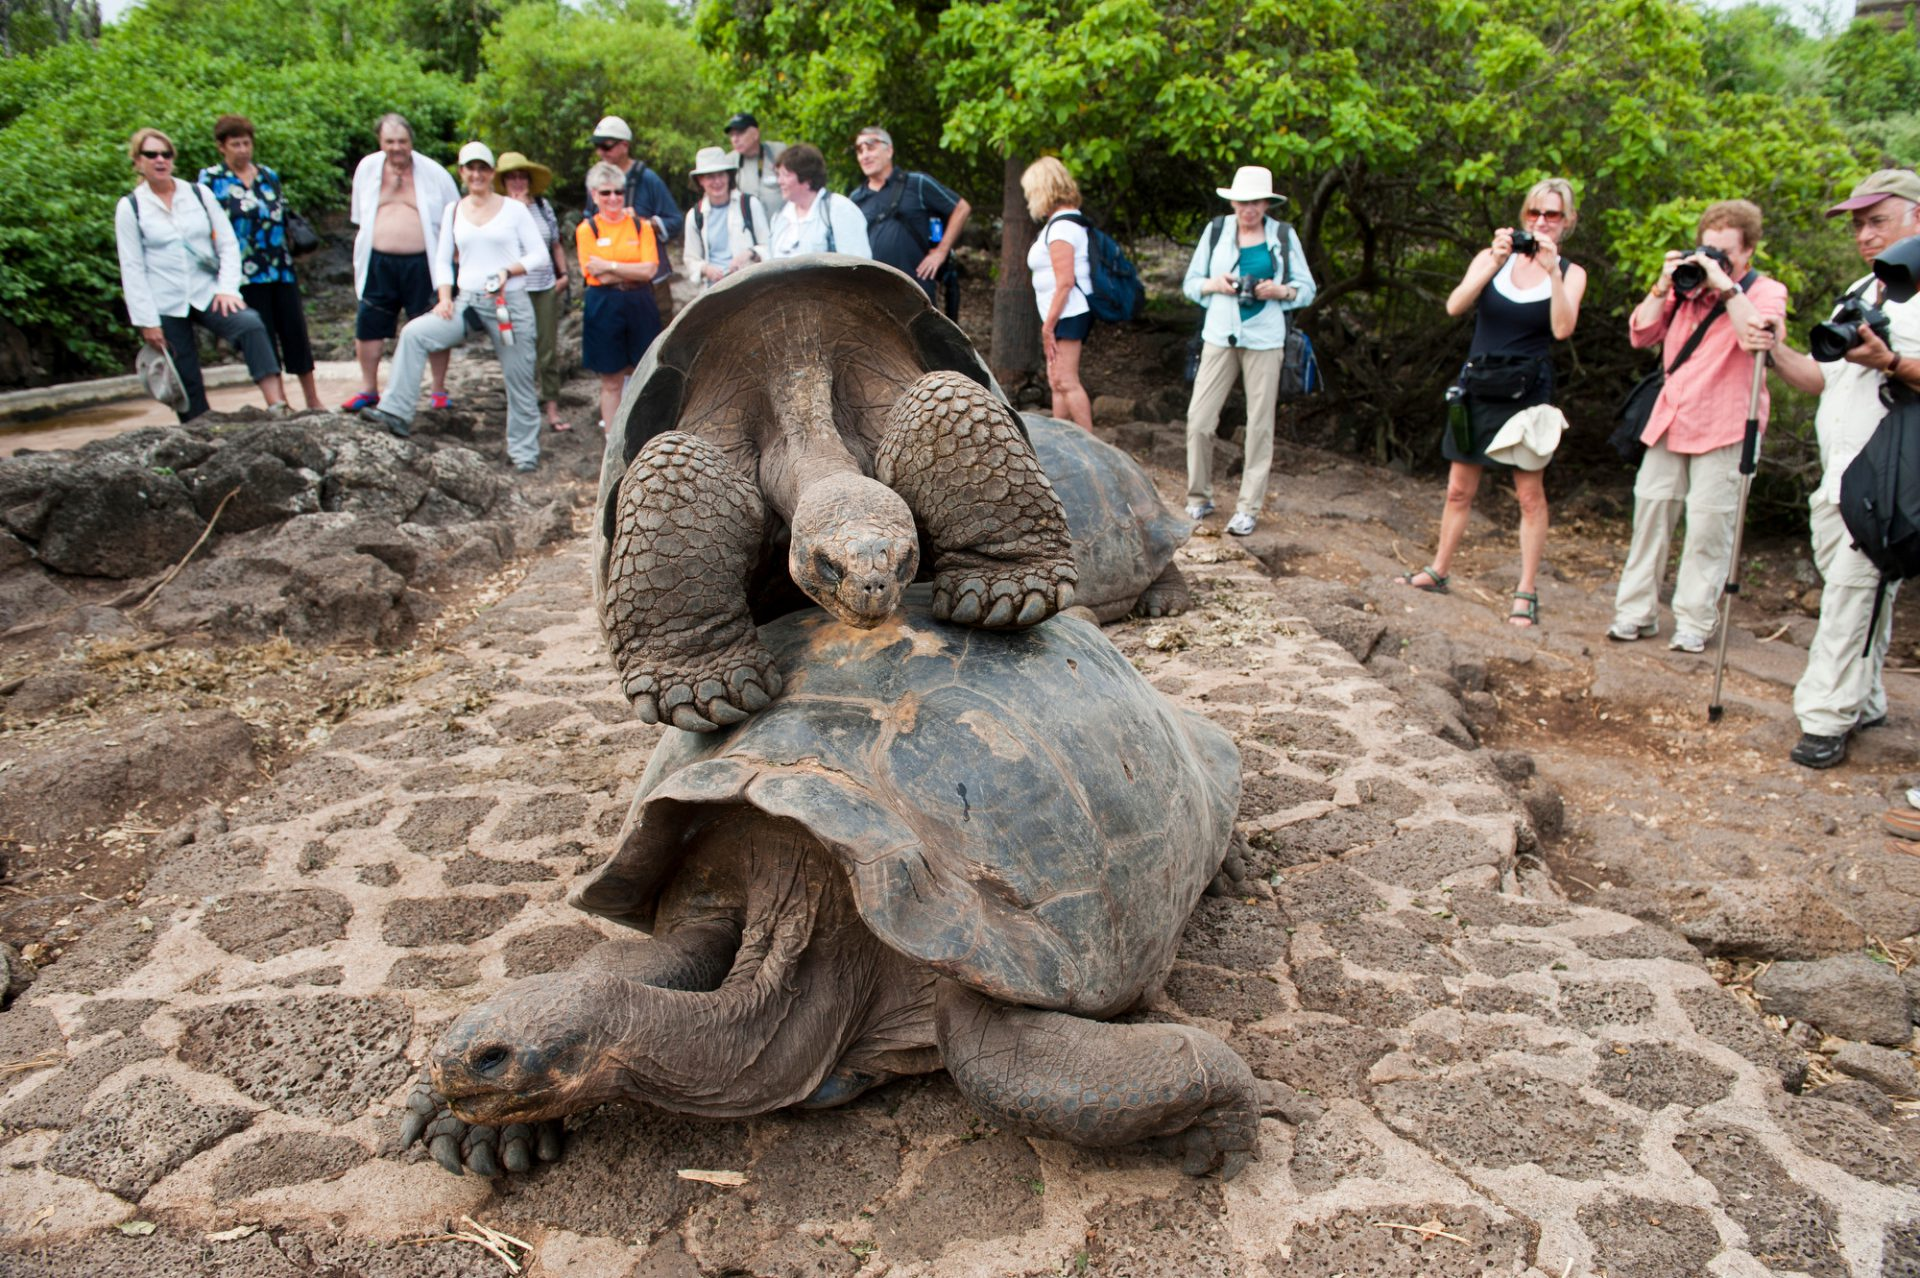 Tourists photograph very old and very rare Galapagos tortoises, Chelonoidis vicina, at the Charles Darwin Research Station in the Galapagos.